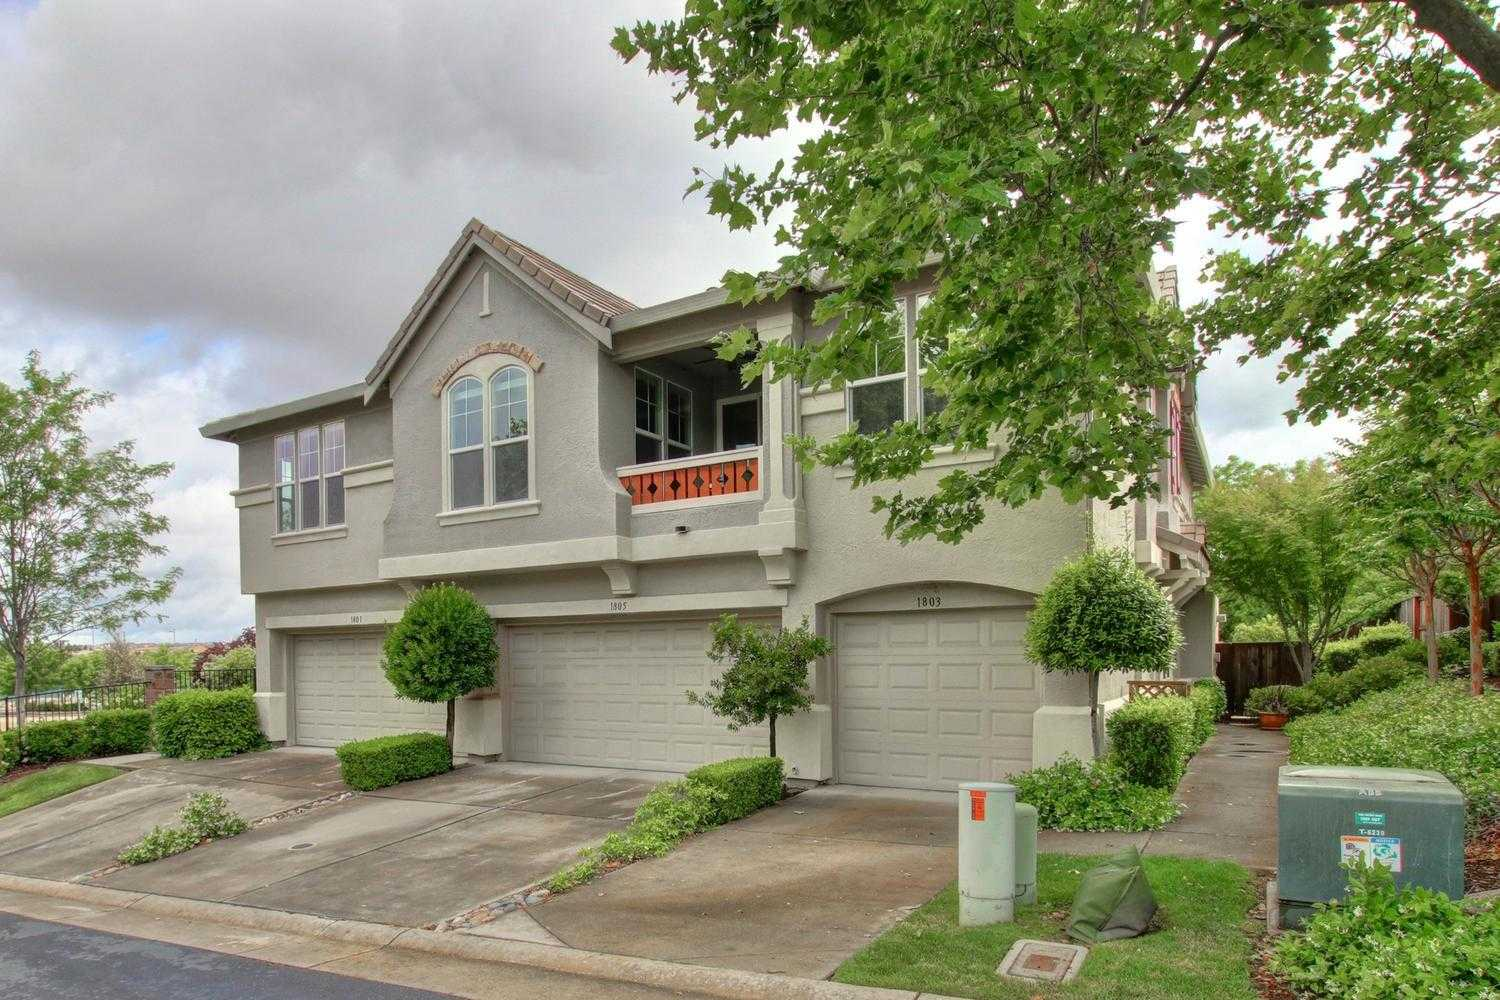 1803 Illinois Way # 38 Rocklin, CA 95765